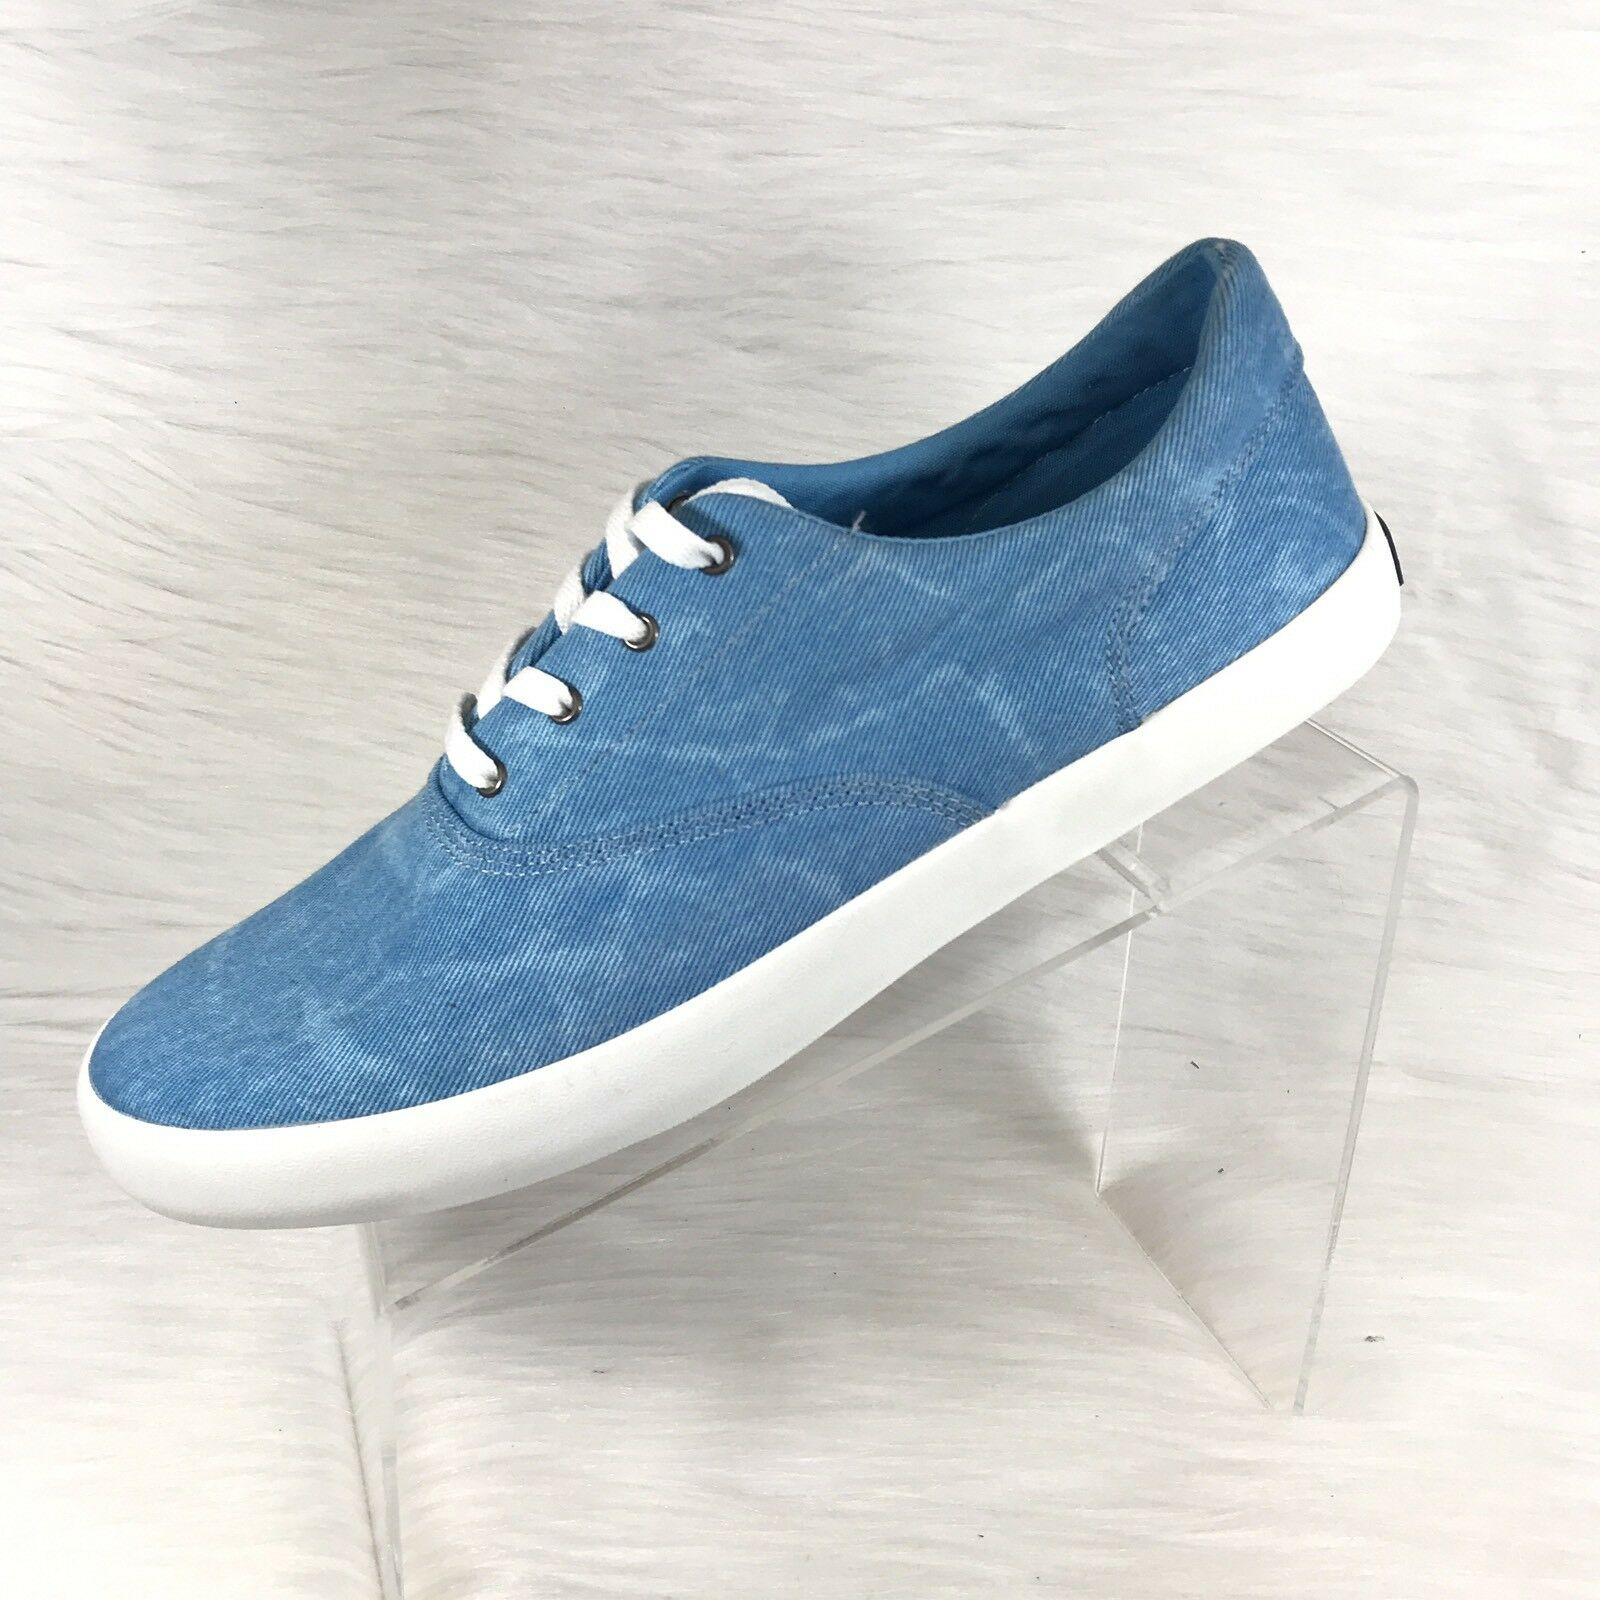 Sperry Top Sider Men's Lace Up Sneakers bluee Size 11.5 NEW